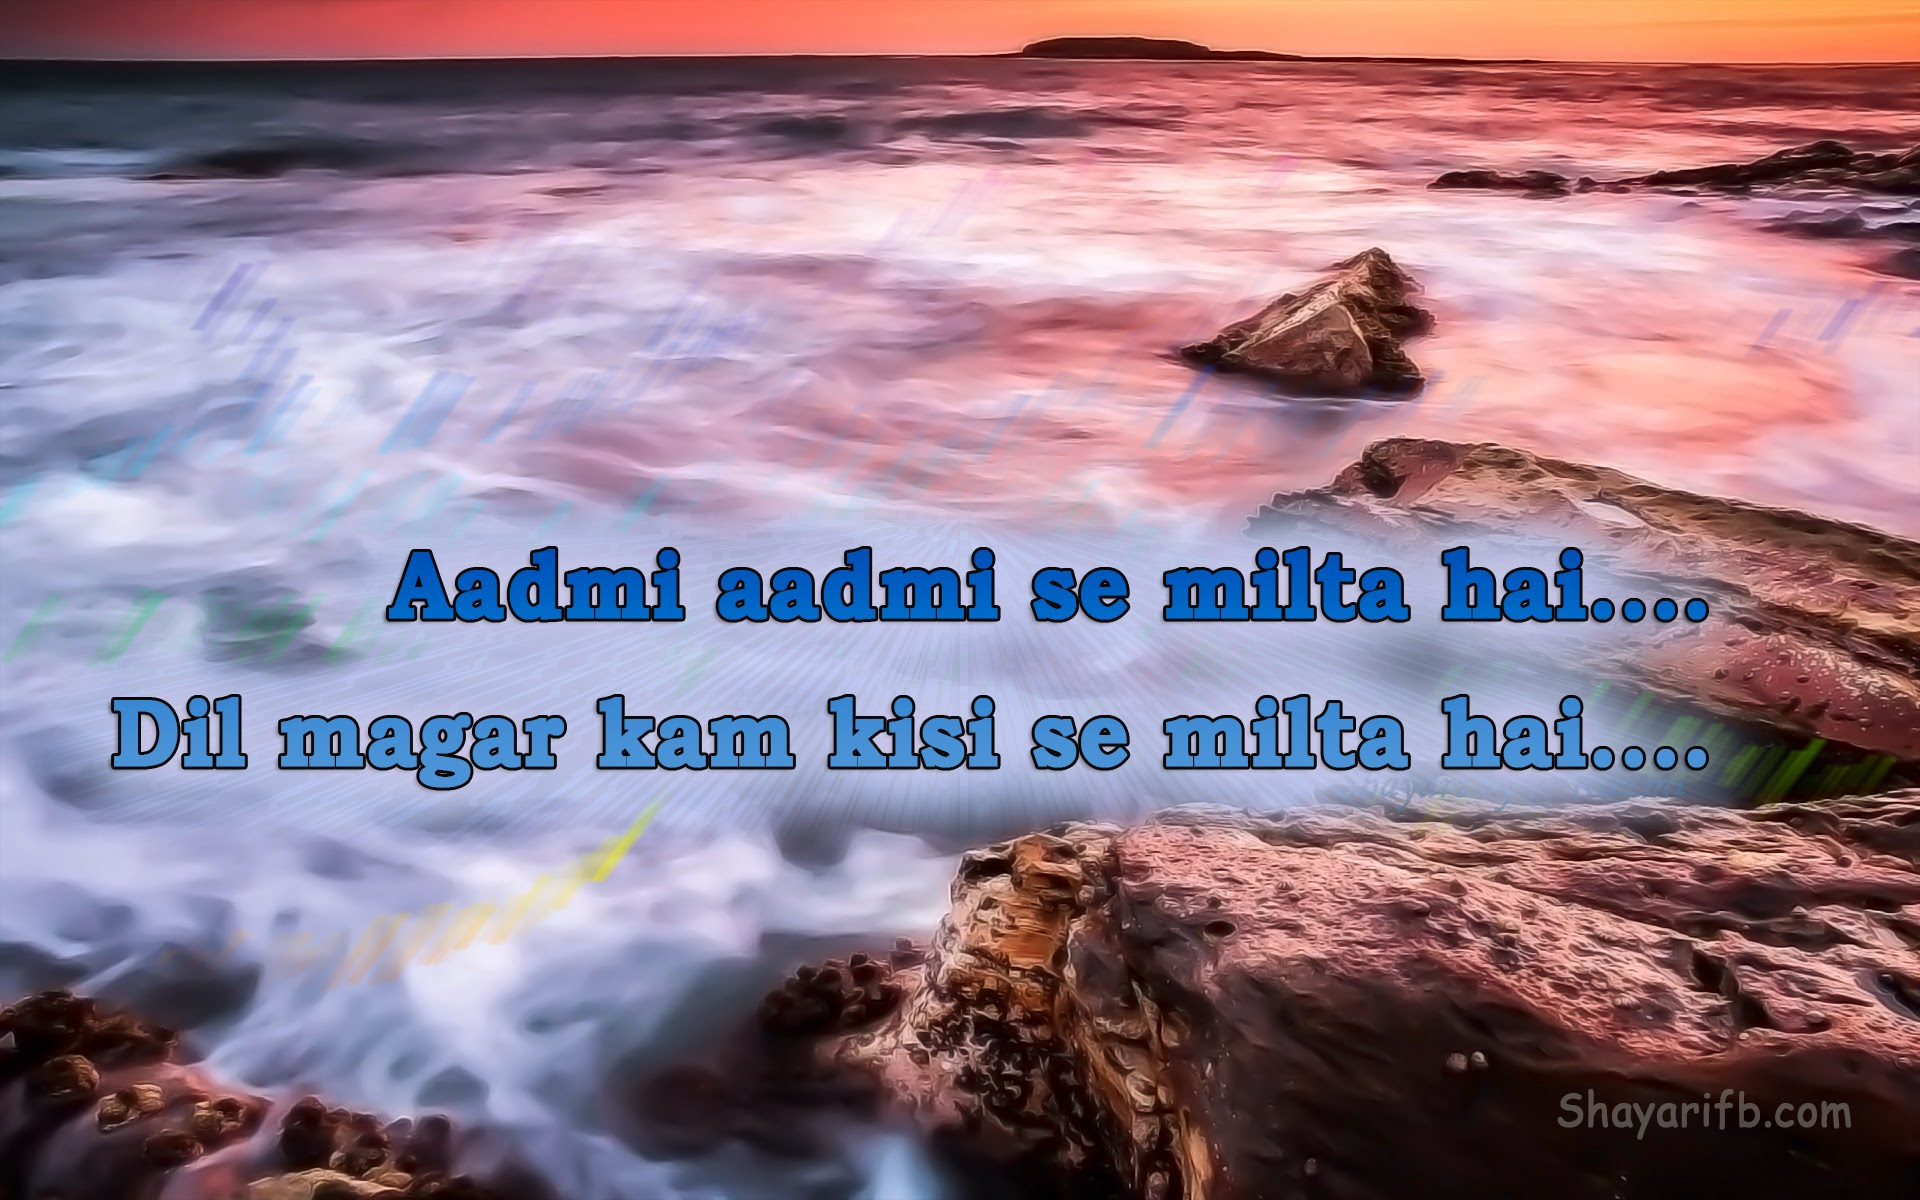 Sad Love Judai Wallpaper : Dard bhari hindi shayari HD wallpaperLove Shayari and Sad Shayari